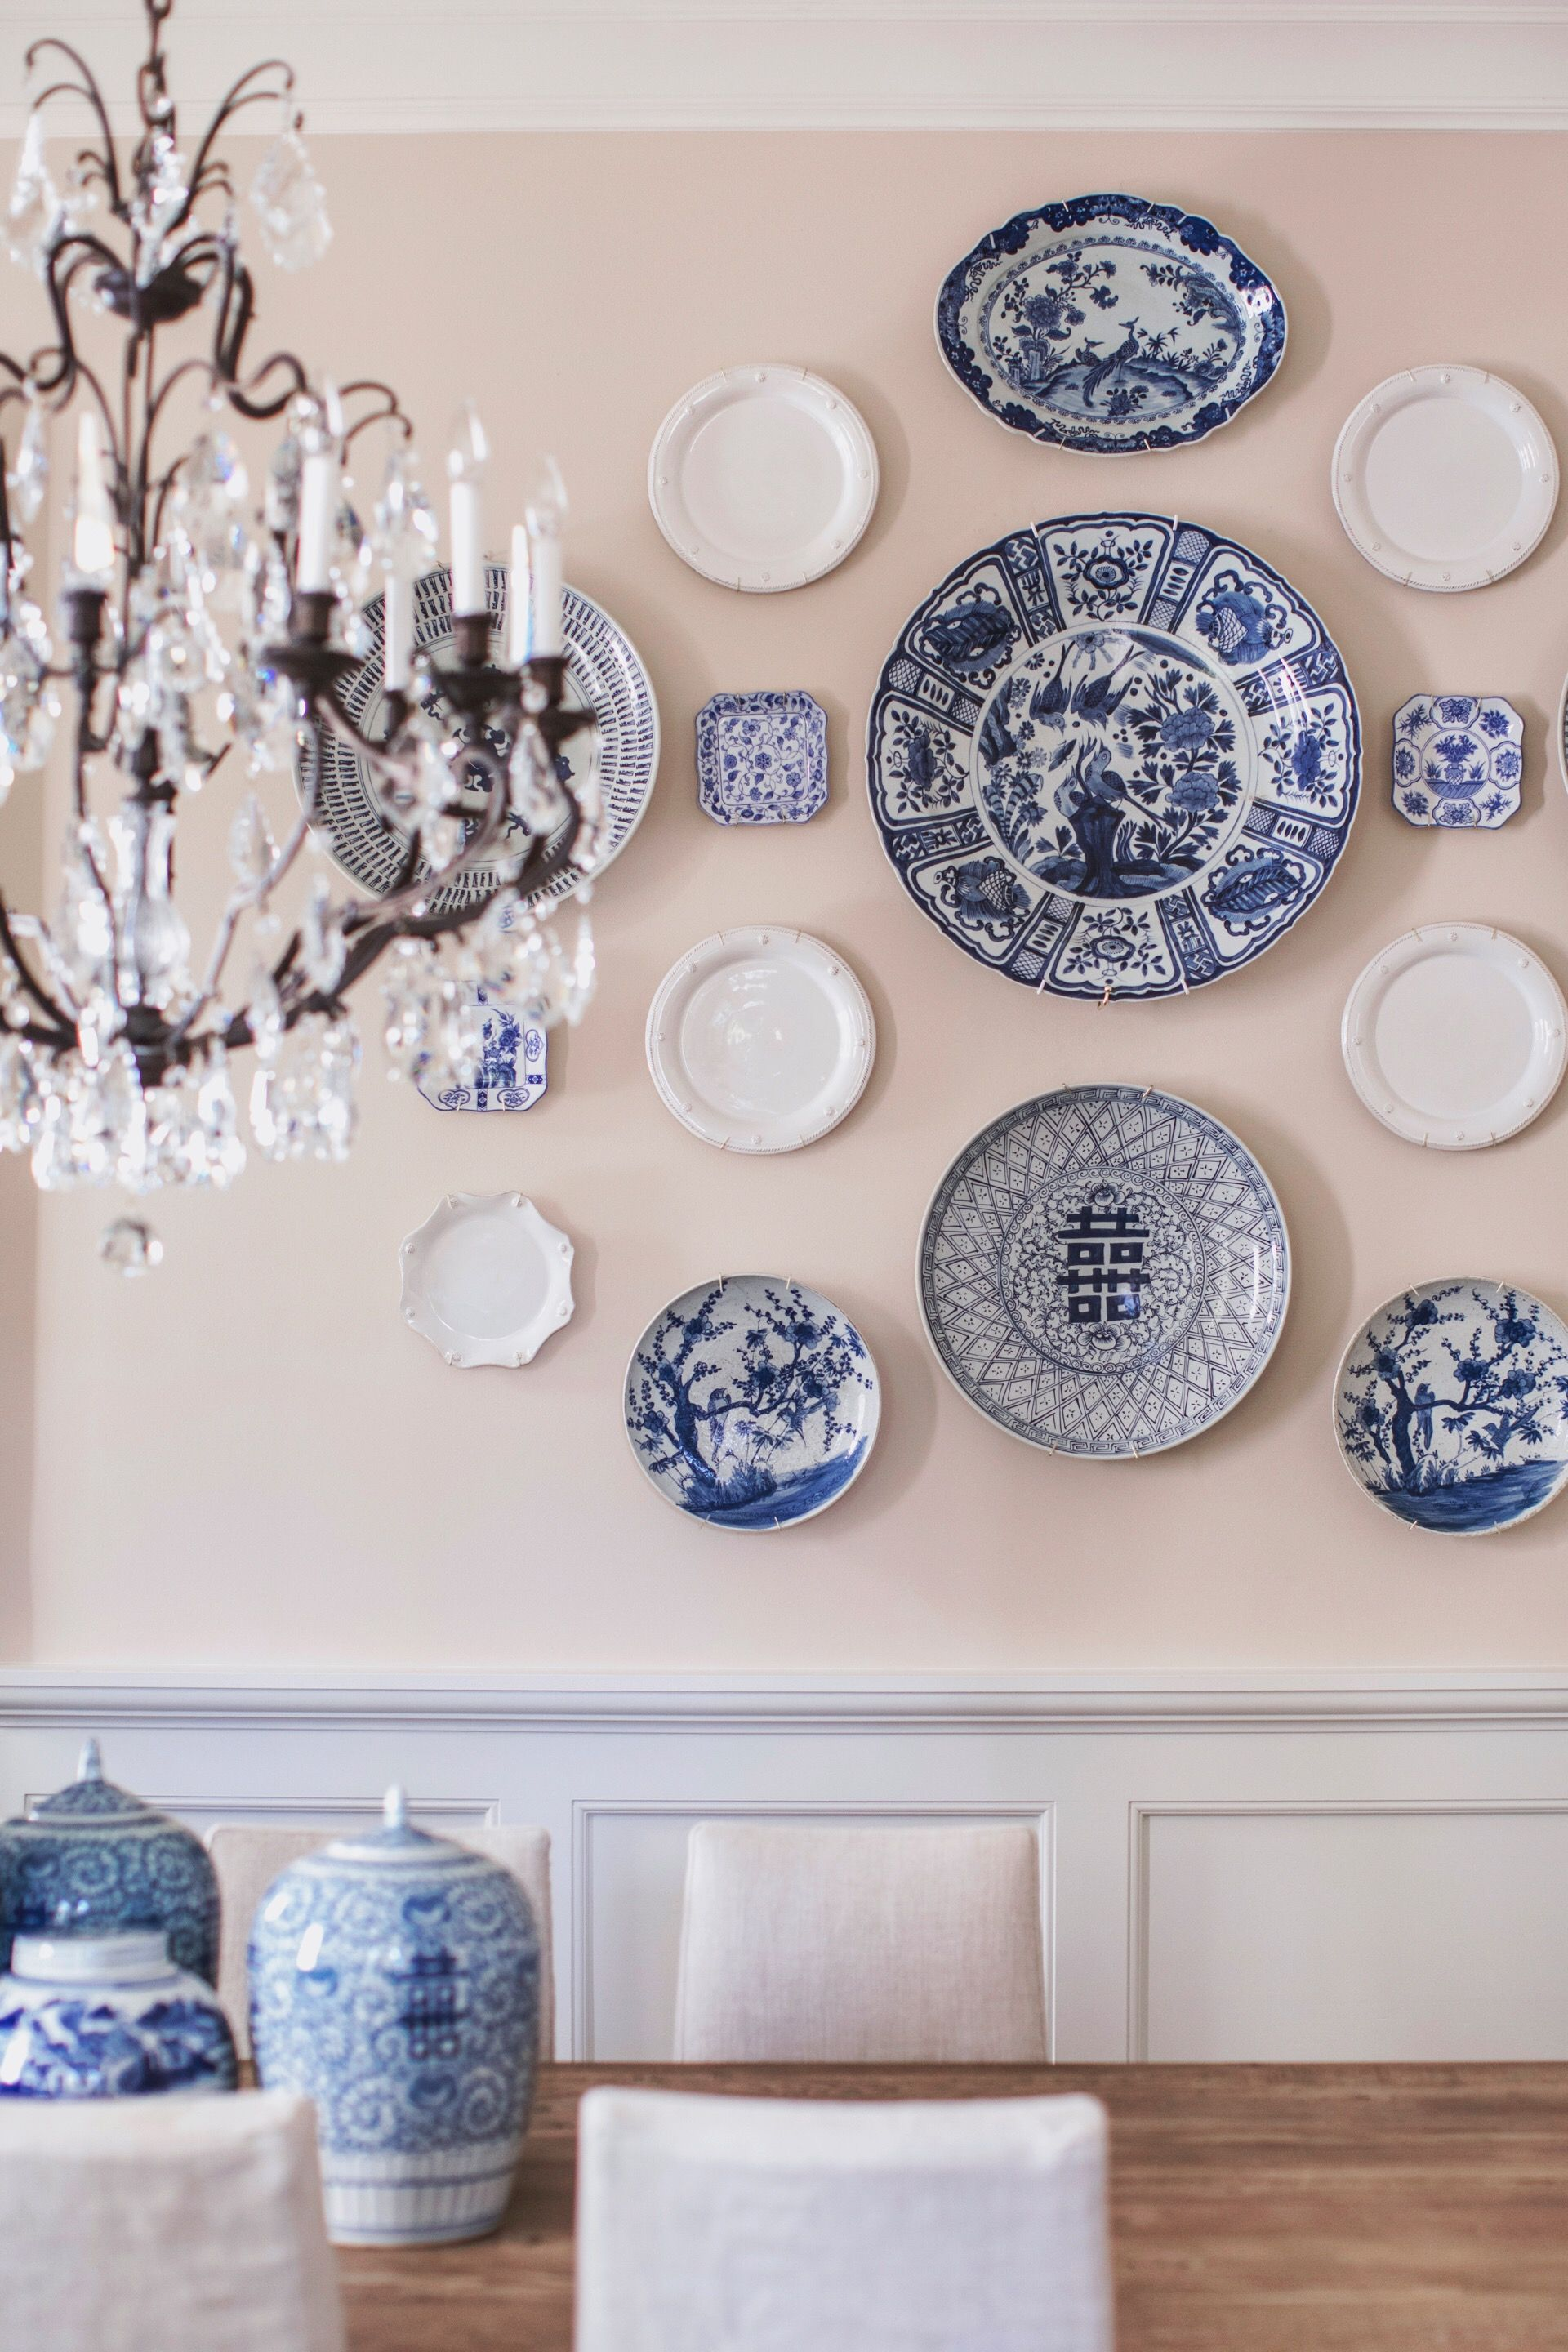 Blue And White Decorative Wall Plates Enchanting Pinborn On Fifth On Style  Home  Pinterest  Mantle Room Decorating Design